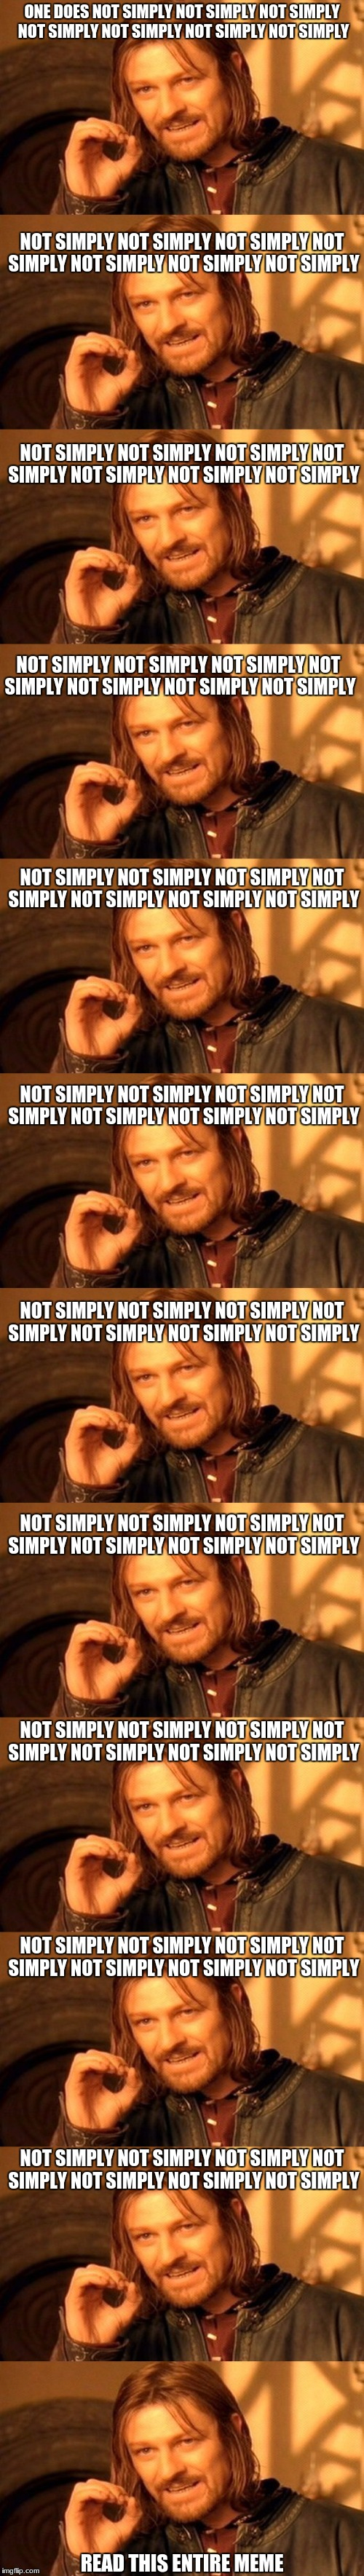 this took awhile to make | ONE DOES NOT SIMPLY NOT SIMPLY NOT SIMPLY NOT SIMPLY NOT SIMPLY NOT SIMPLY NOT SIMPLY READ THIS ENTIRE MEME NOT SIMPLY NOT SIMPLY NOT SIMPLY | image tagged in long,memes,funny,one does not simply,long memes,waste of time | made w/ Imgflip meme maker